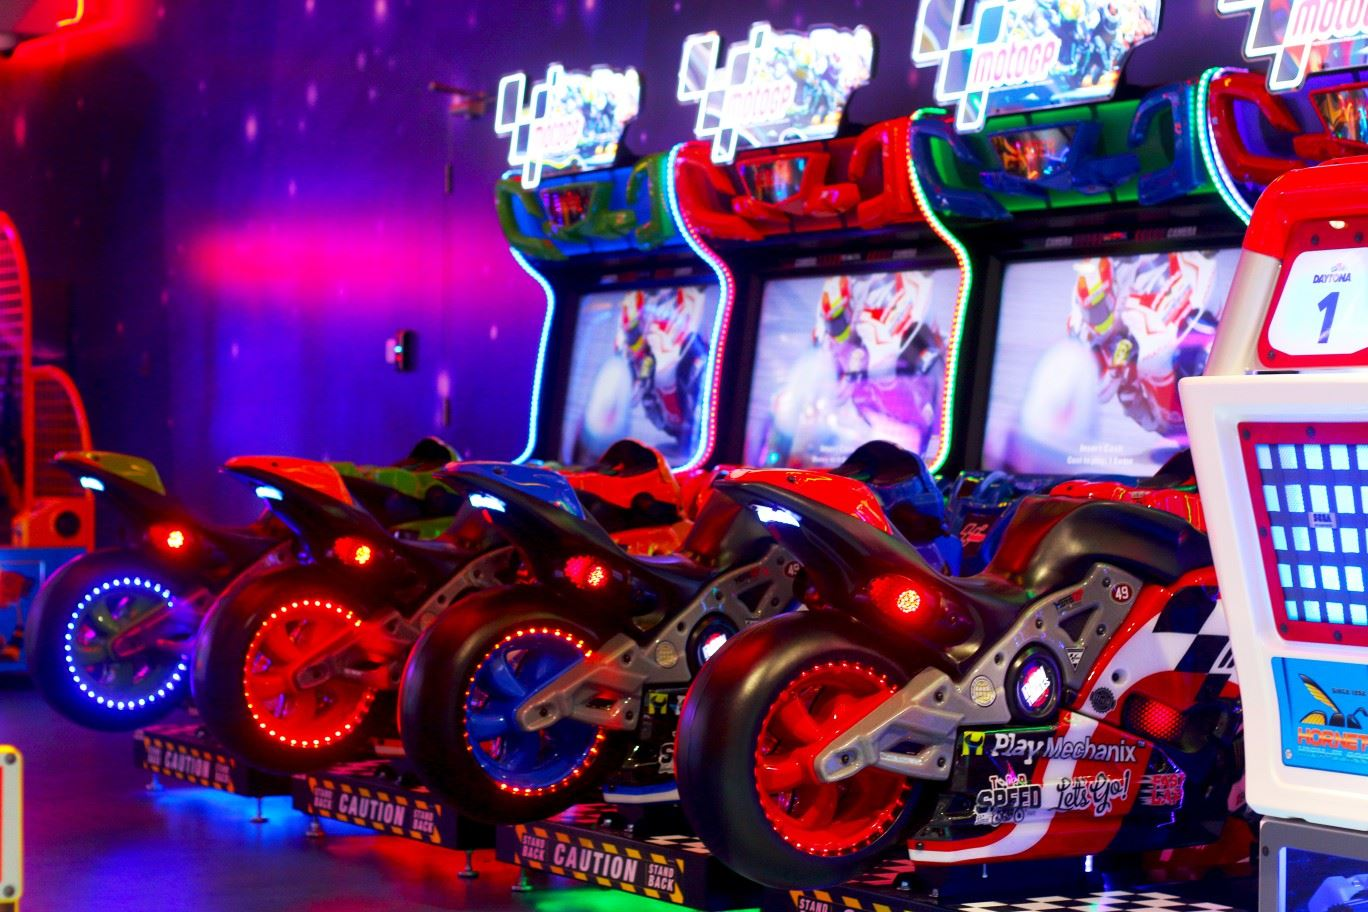 Moto GP game at Magic Planet City Centre Meaisem